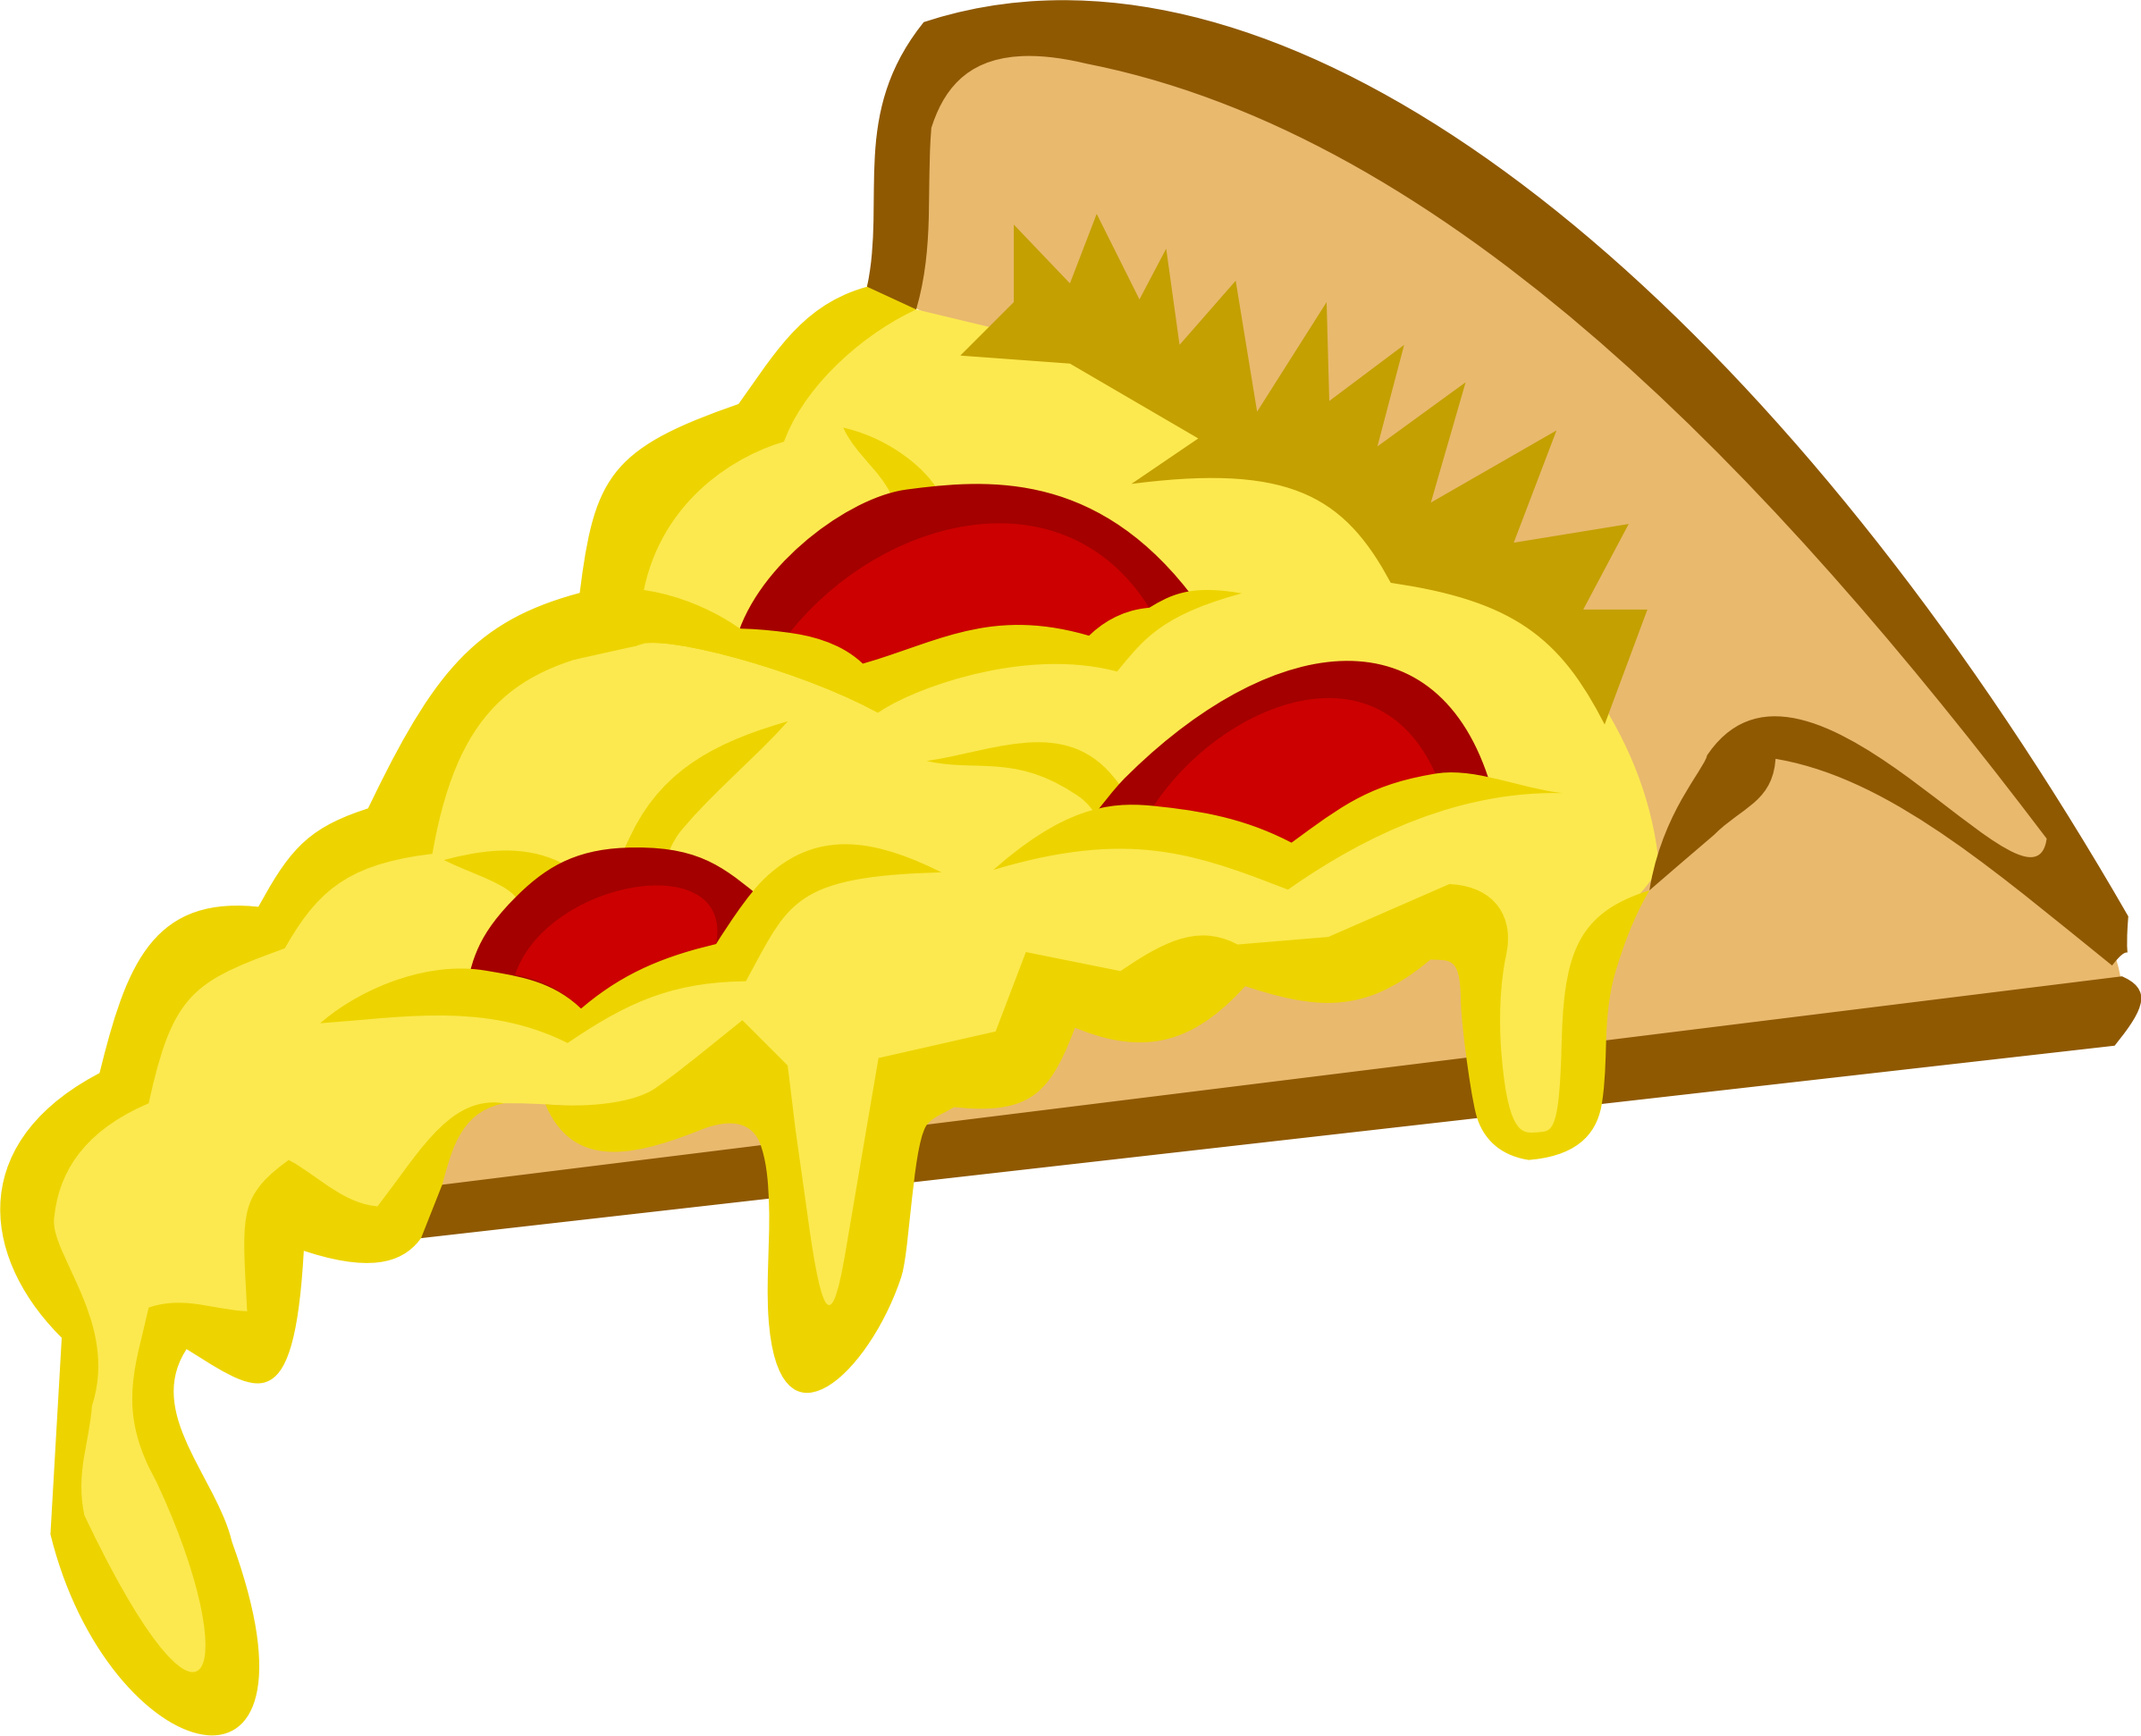 Free PNG Pizza Slice - 76995